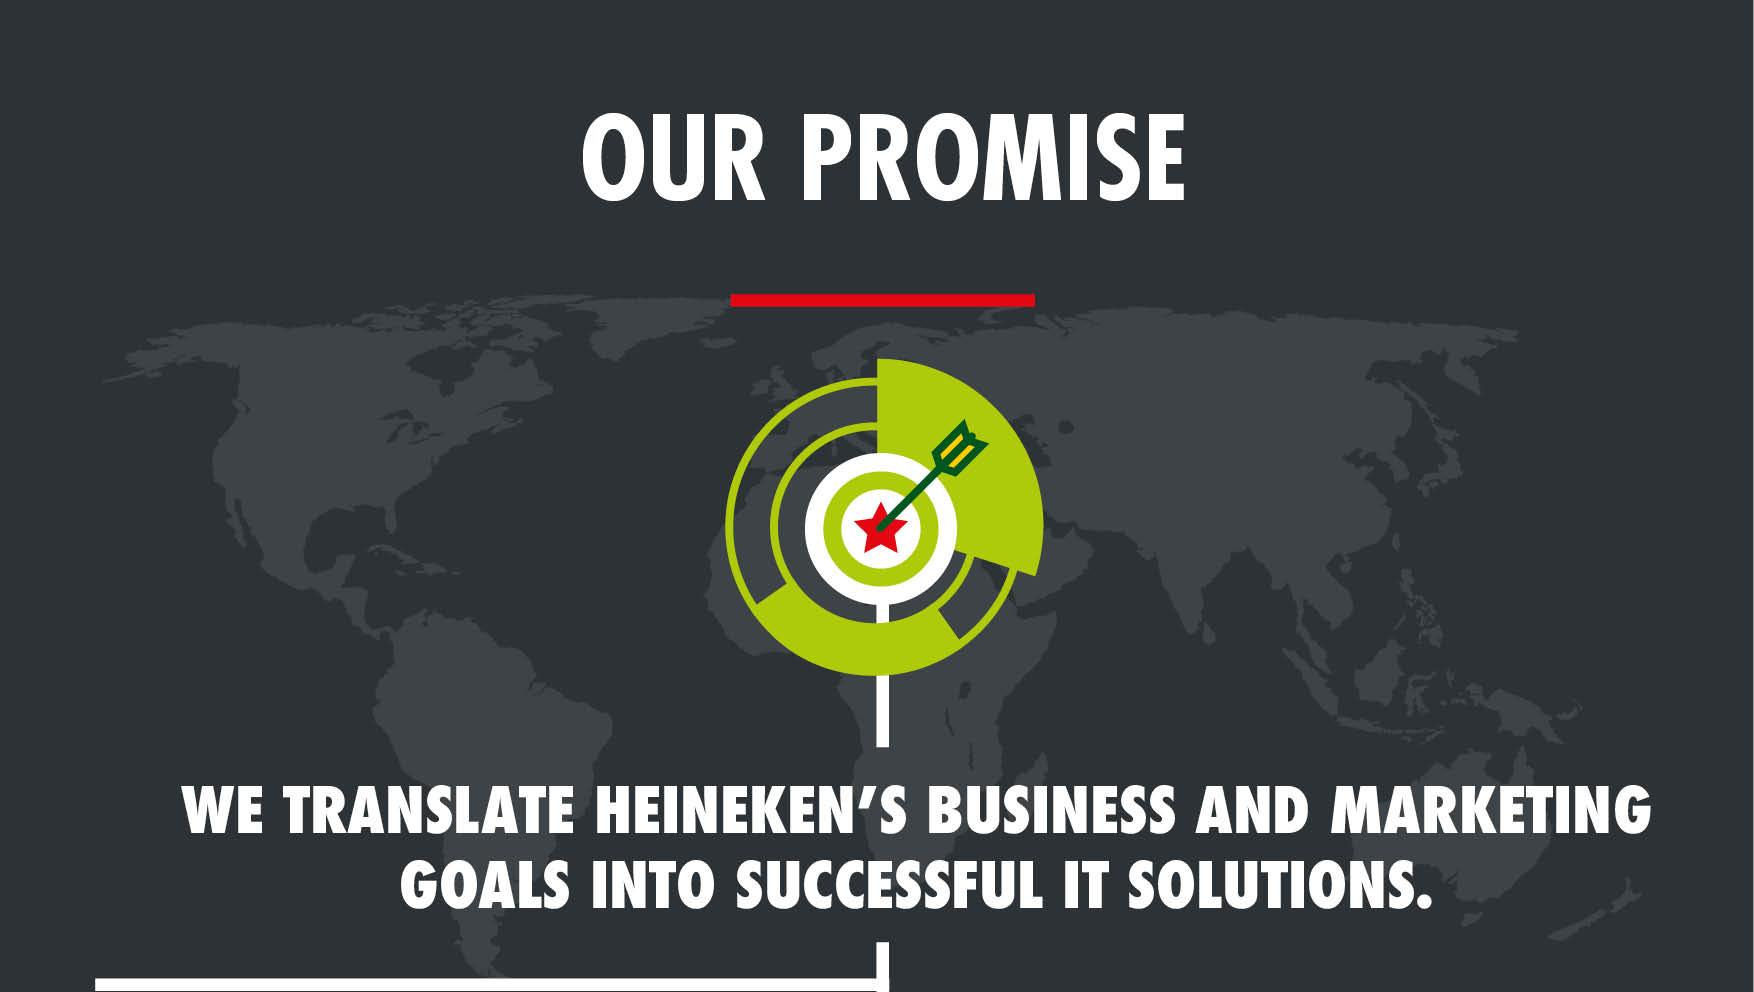 slides-heineken---team-digital-nl---year-20152.jpg